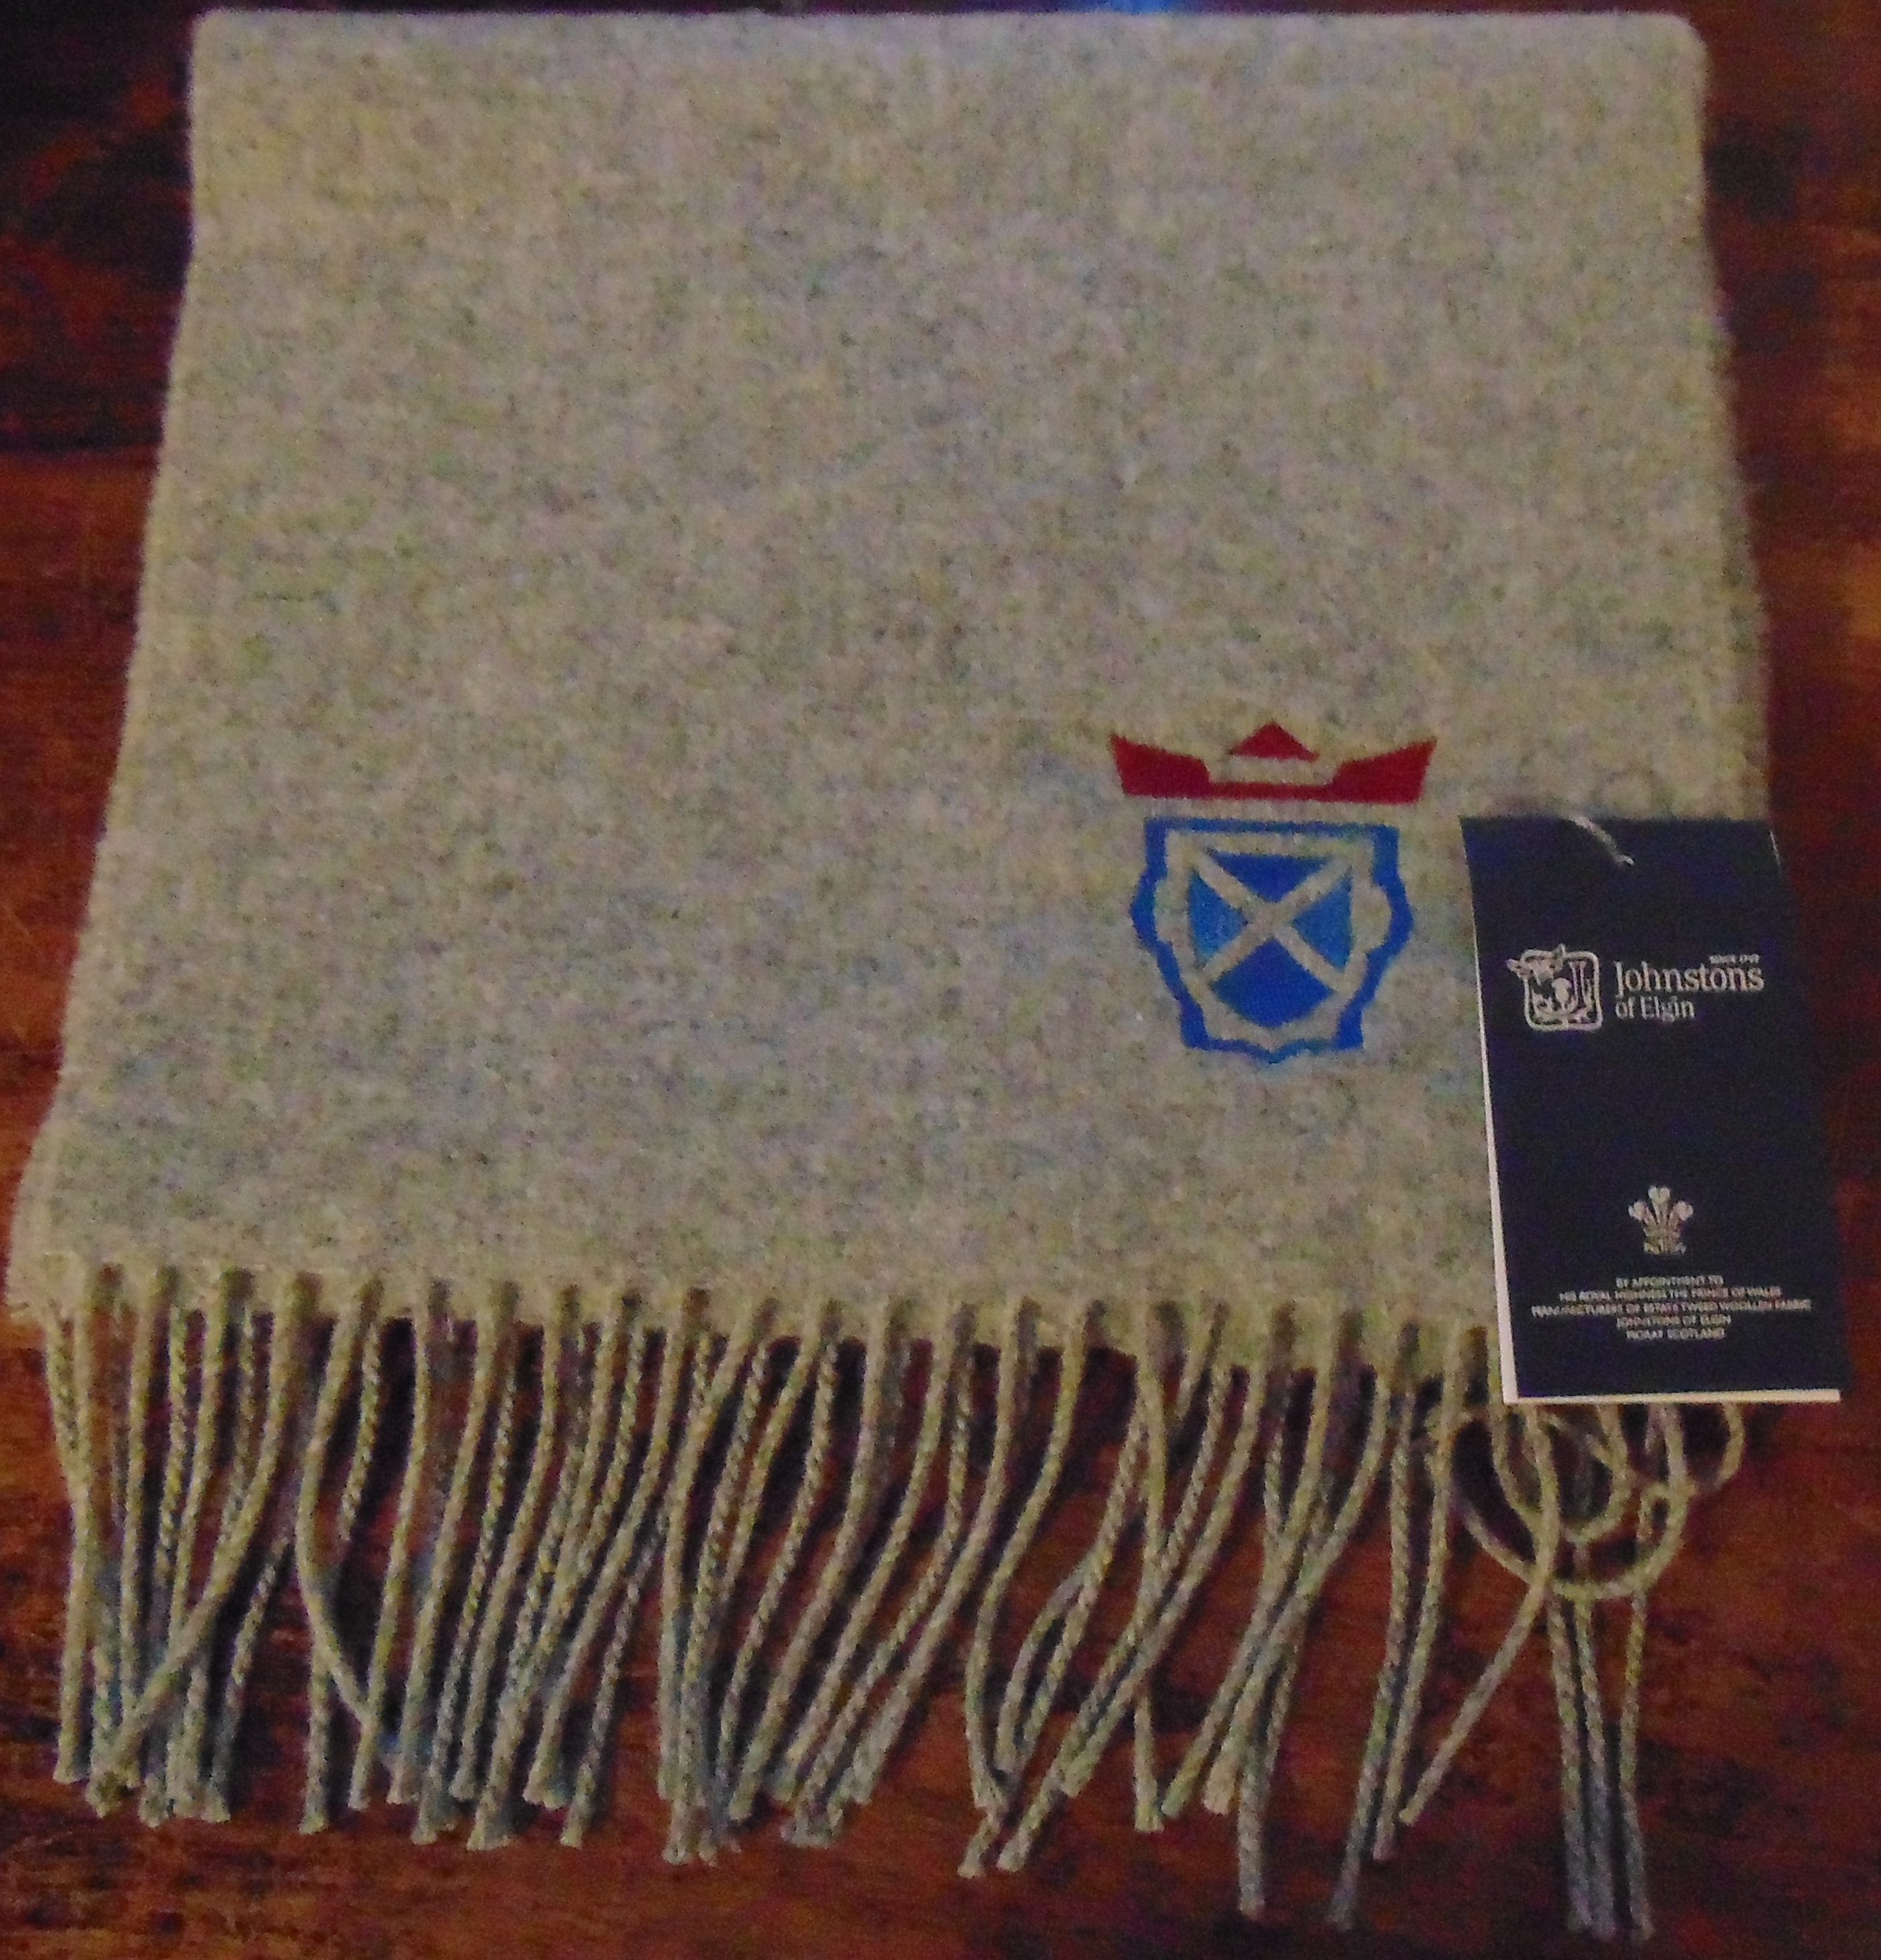 The Highland Military Tattoo Scarf